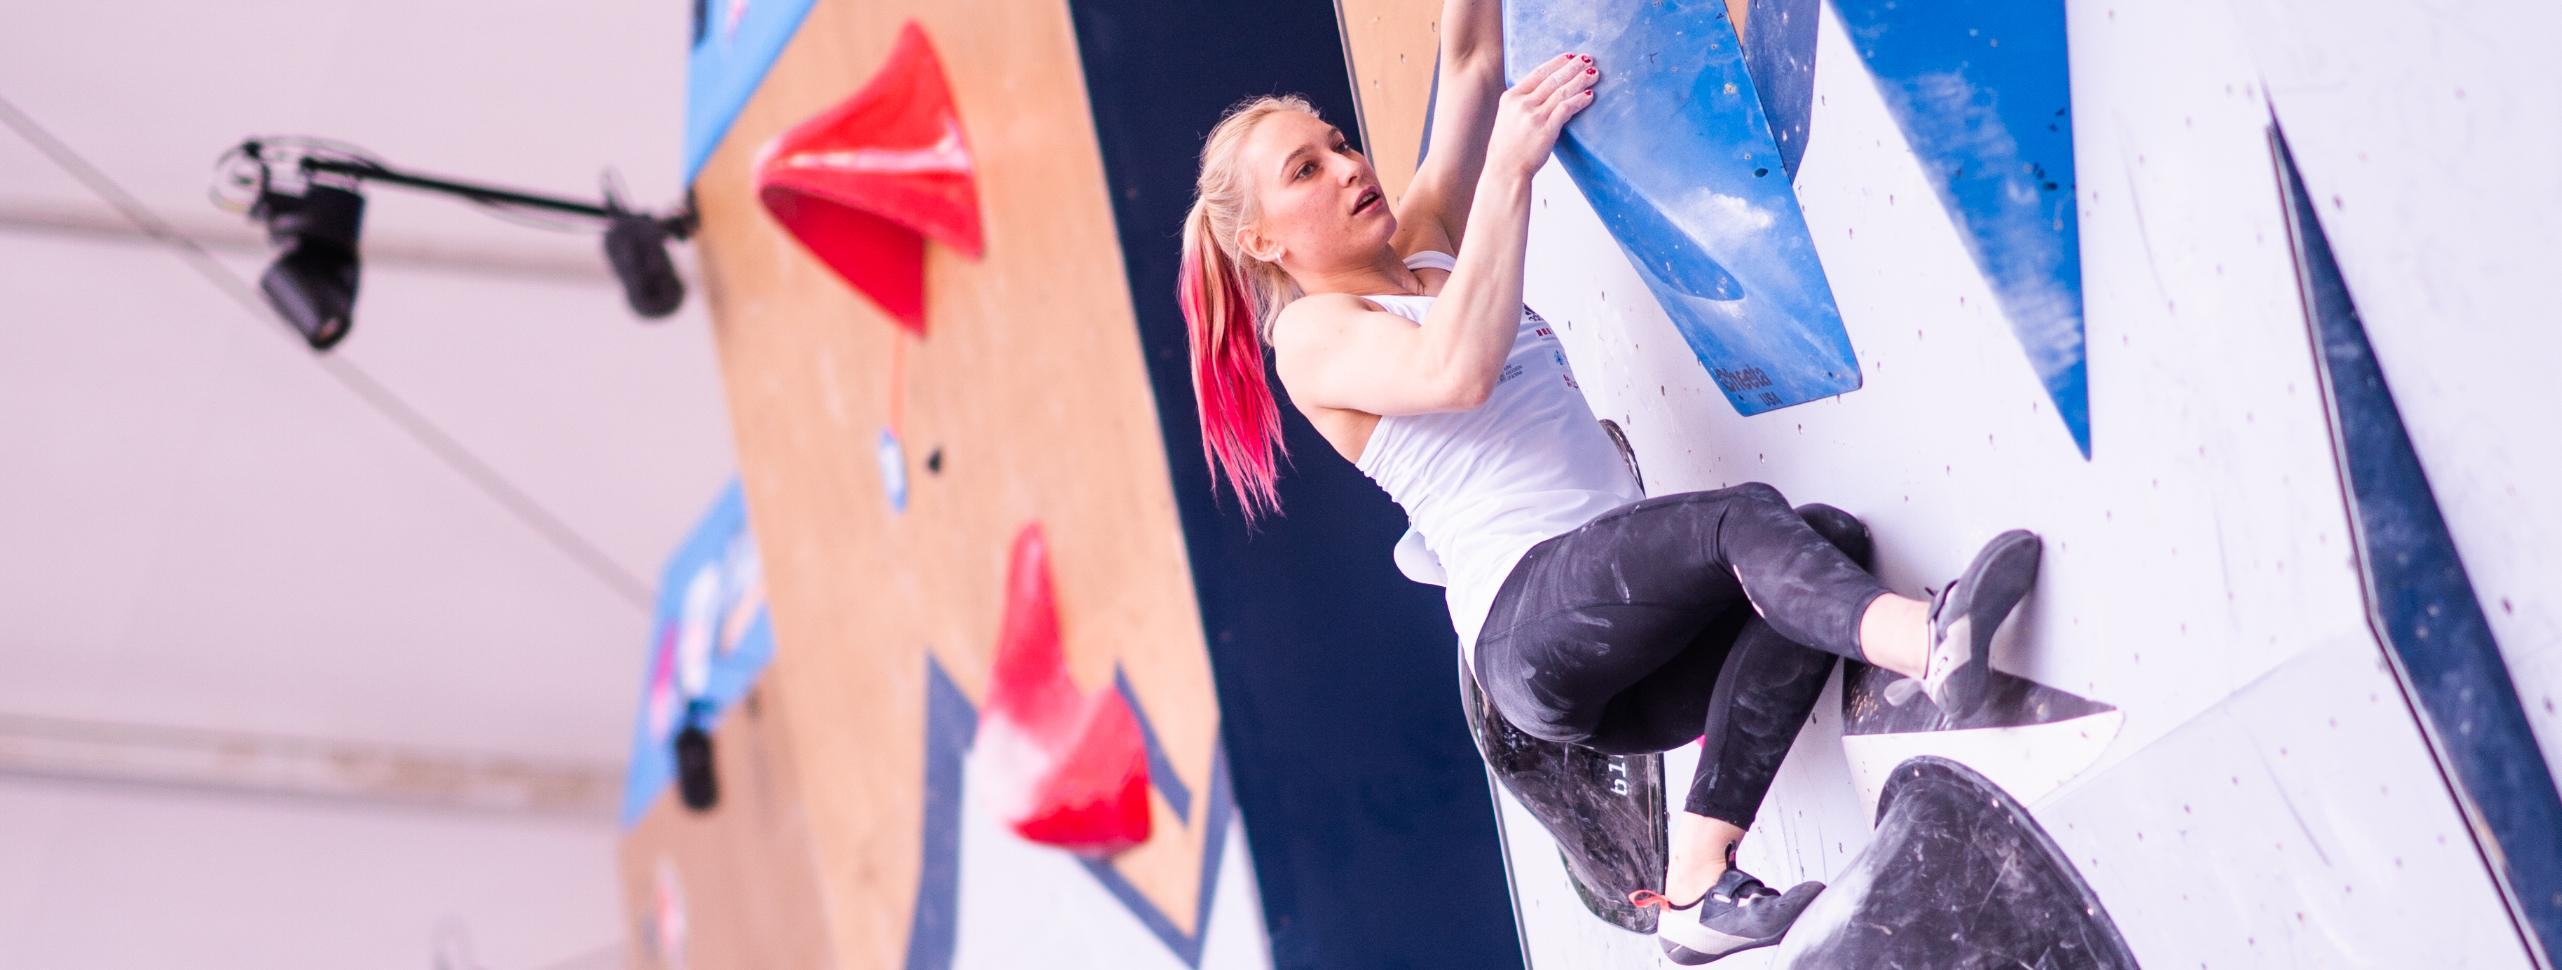 BACK TO COMPETITIONS, BACK TO THE TOP: JANJA GARNBRET LEADS THE WAY INTO THE BOULDER SEMI-FINAL